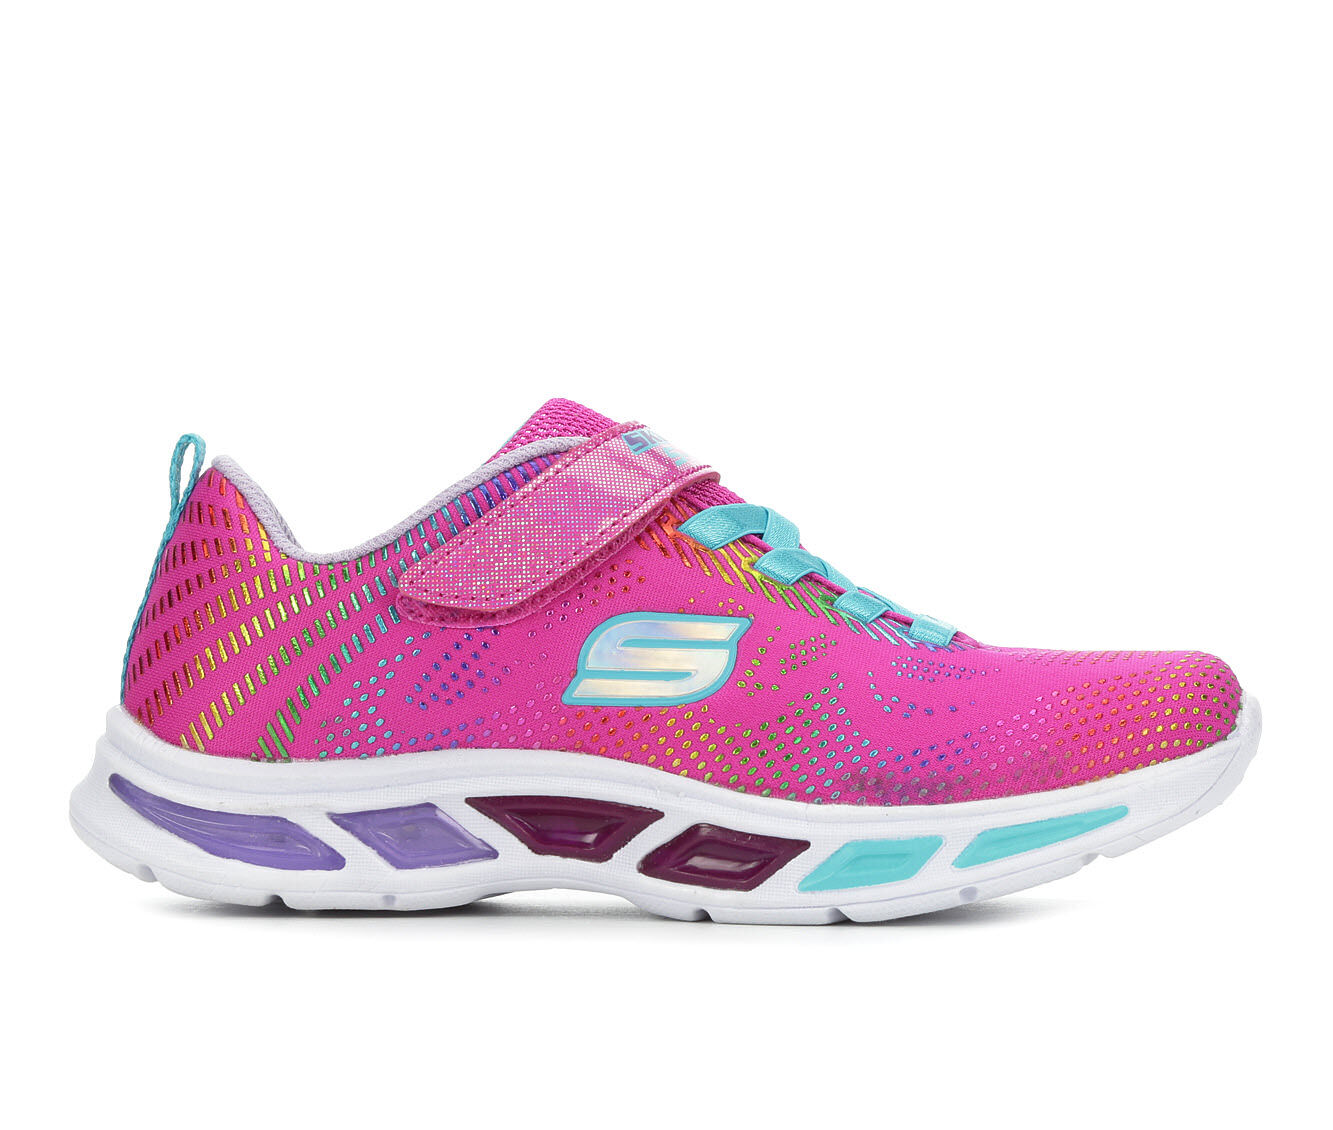 Skechers Gleam N Dream Neon Pink